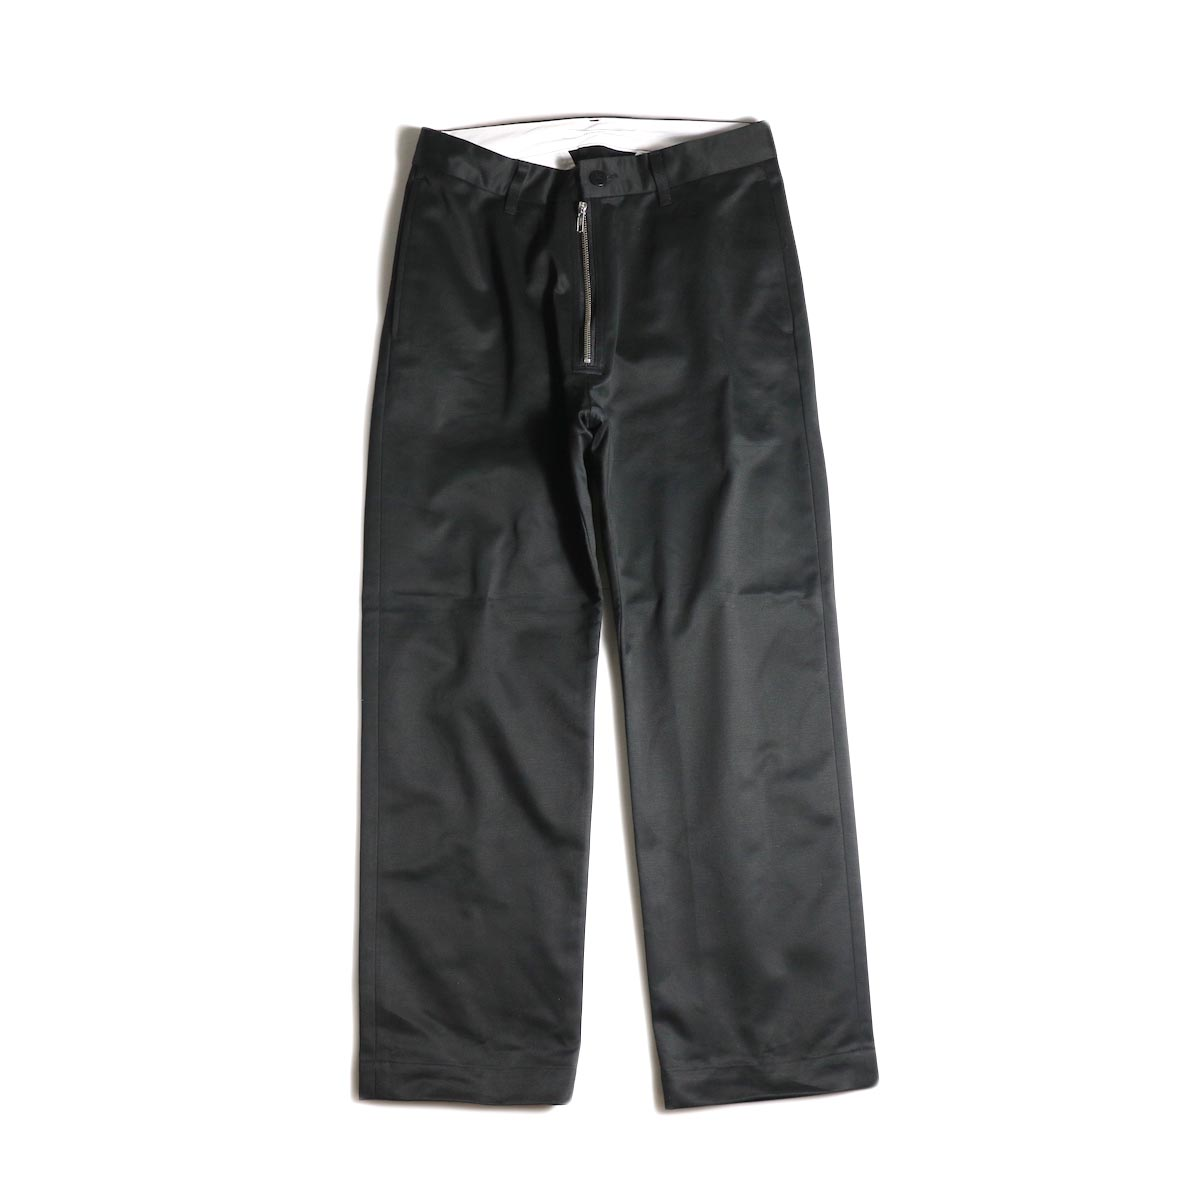 FUTURE PRIMITIVE / FP FZ CHINO PANTS (Black)正面